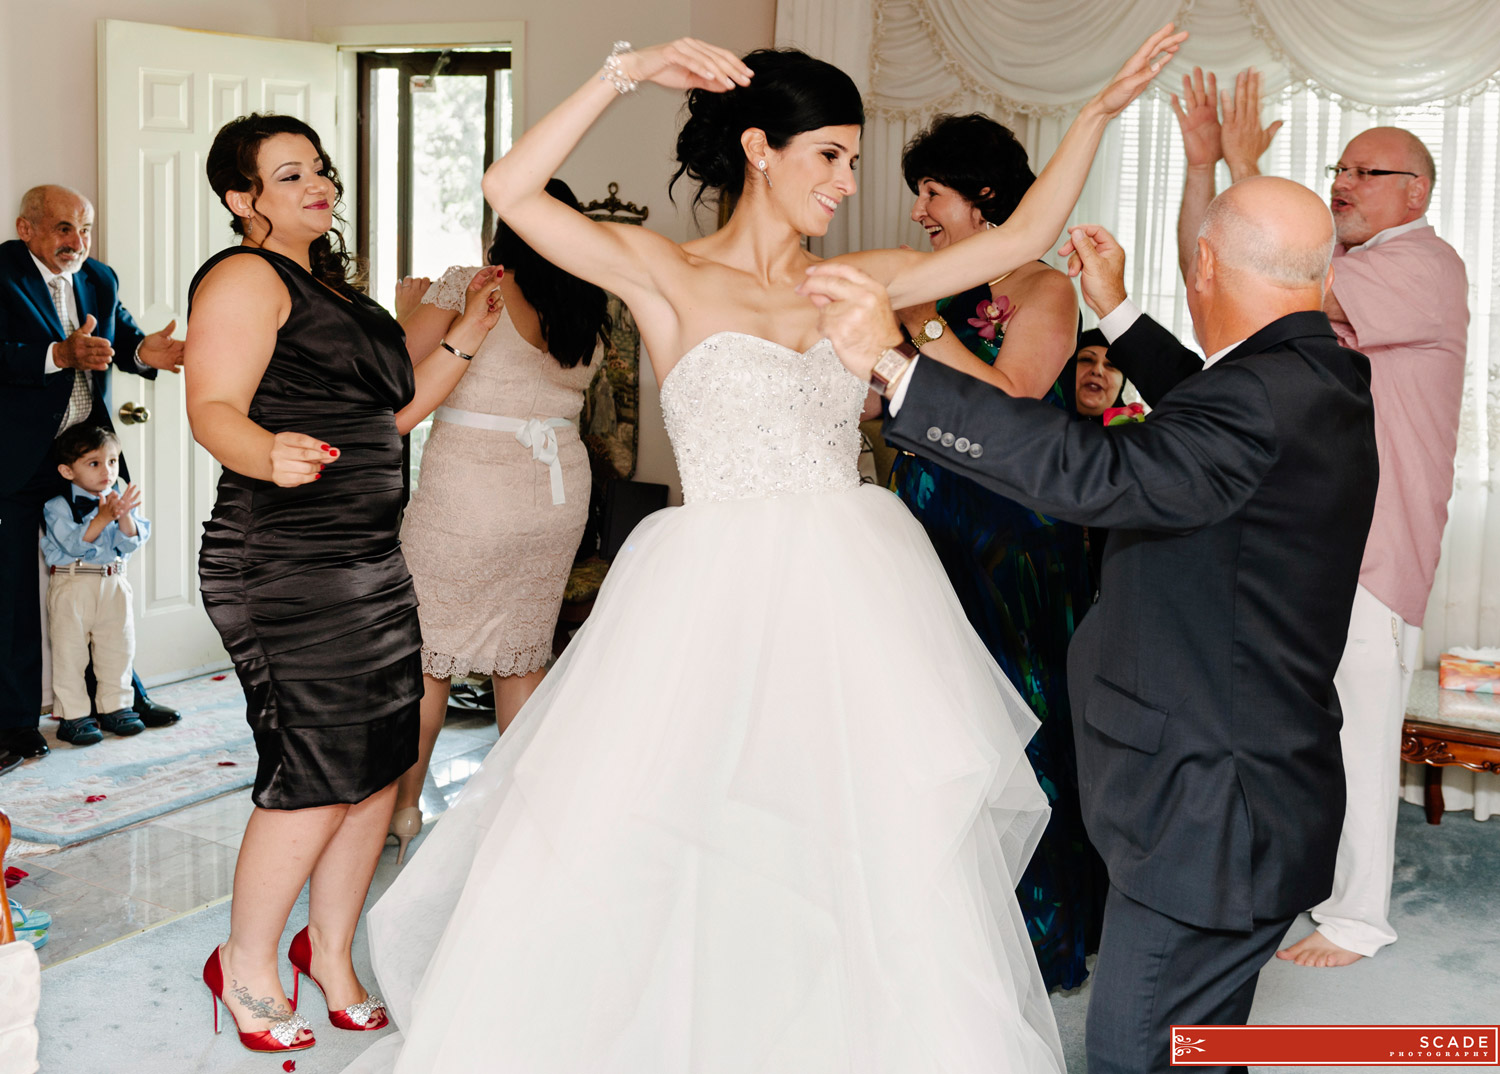 Sorrentinos Edmonton Wedding - Janel and Ben 0008.JPG